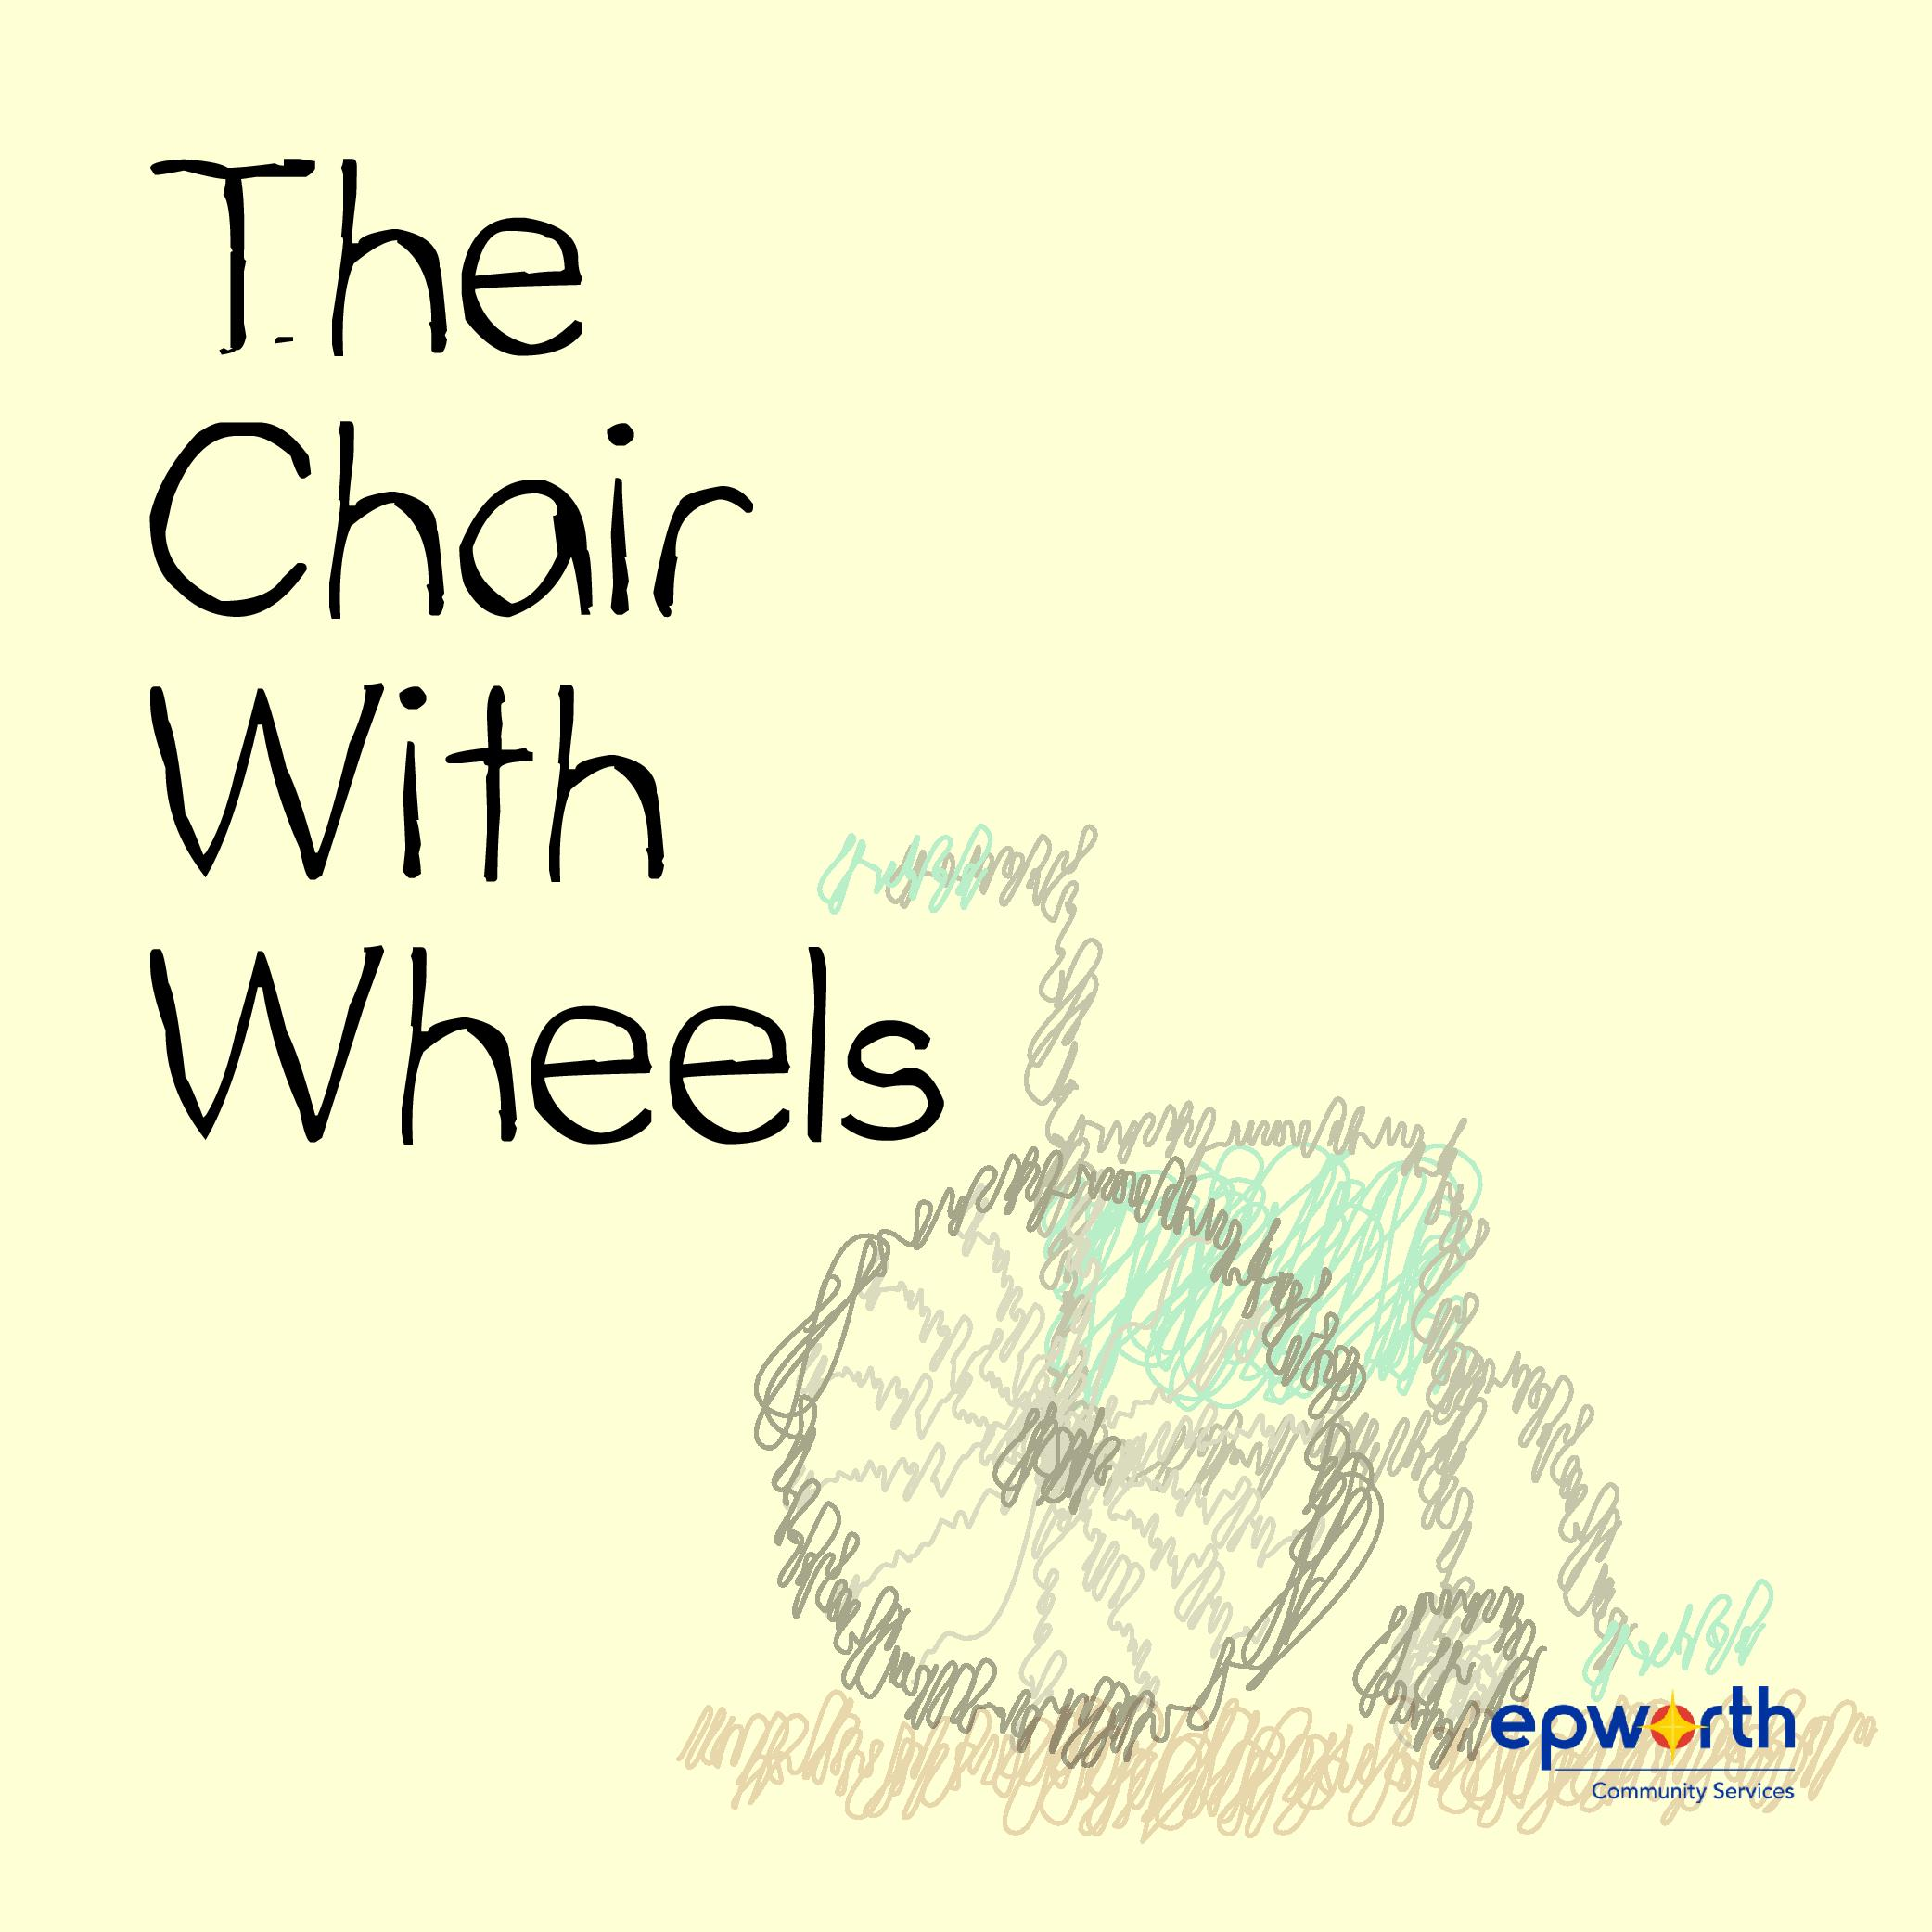 The Chair With Wheels